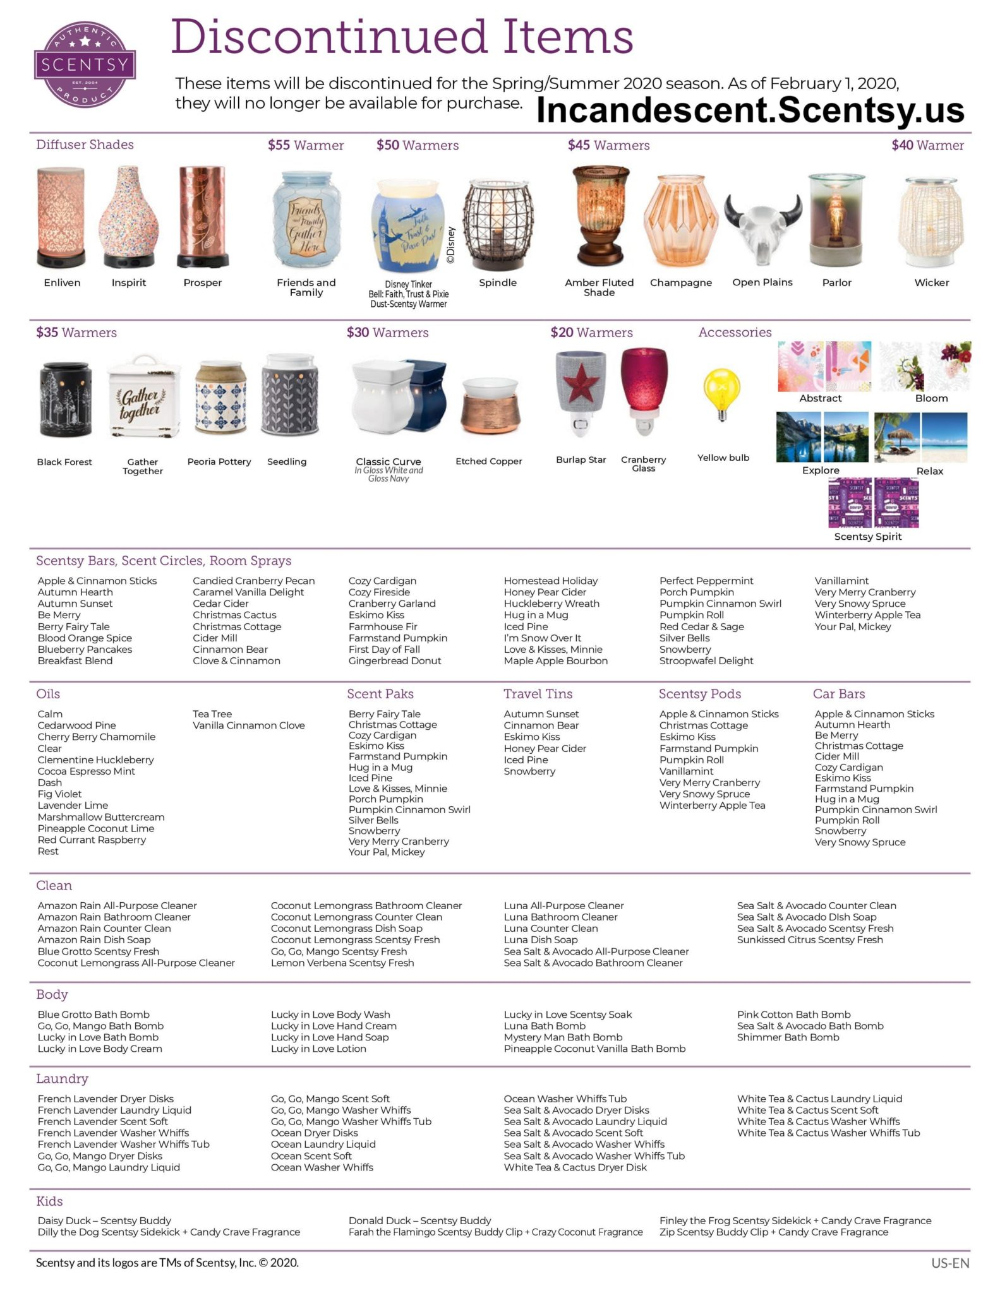 Black Forest Scentsy Christmas 2020 SCENTSY DISCONTINUED PRODUCTS SPRING 2020 in 2020   Scentsy